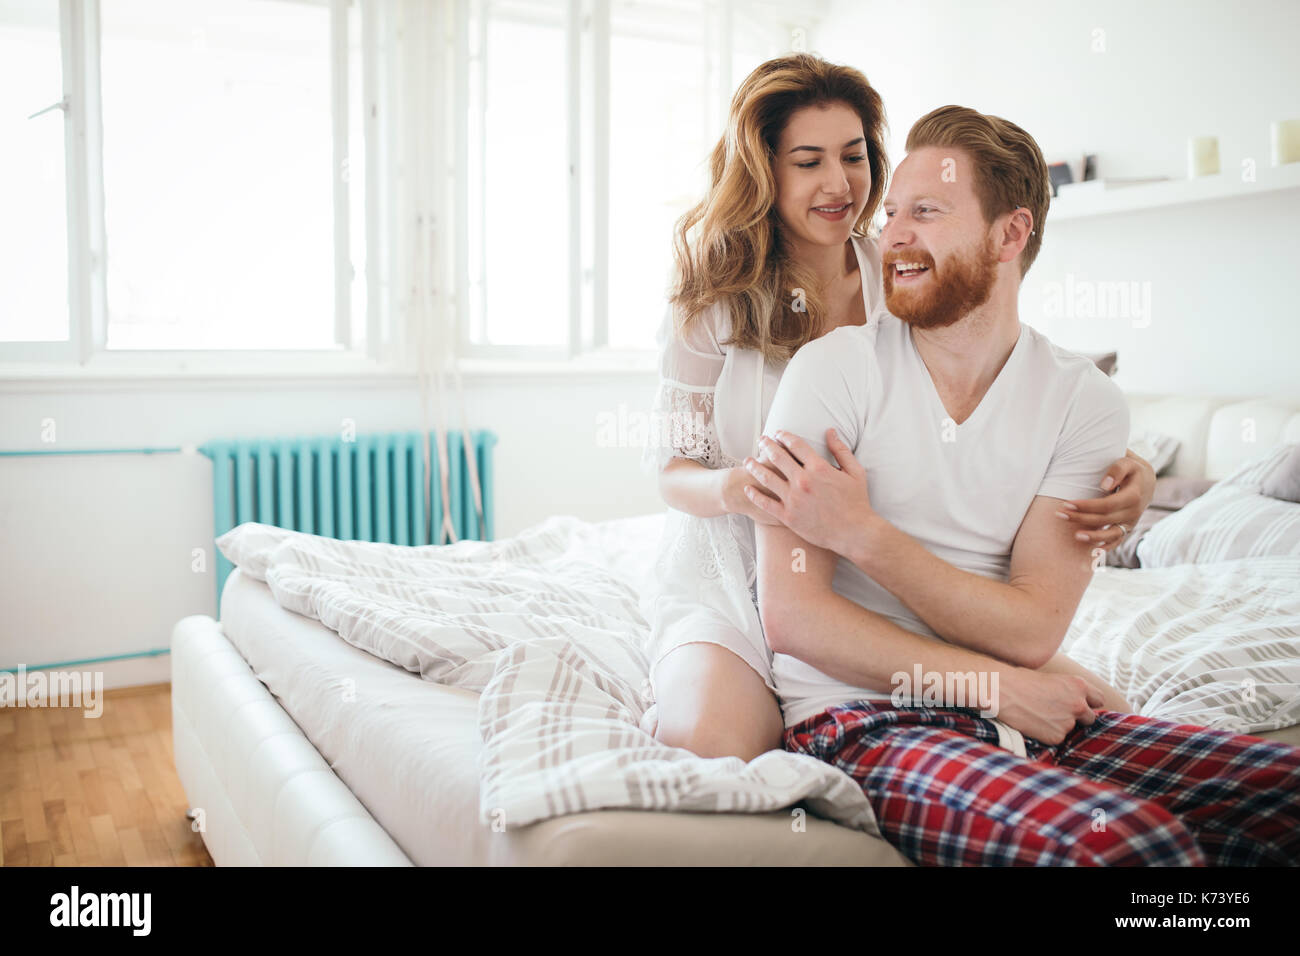 Beautiful happy couple waking up smiling in bedroom - Stock Image